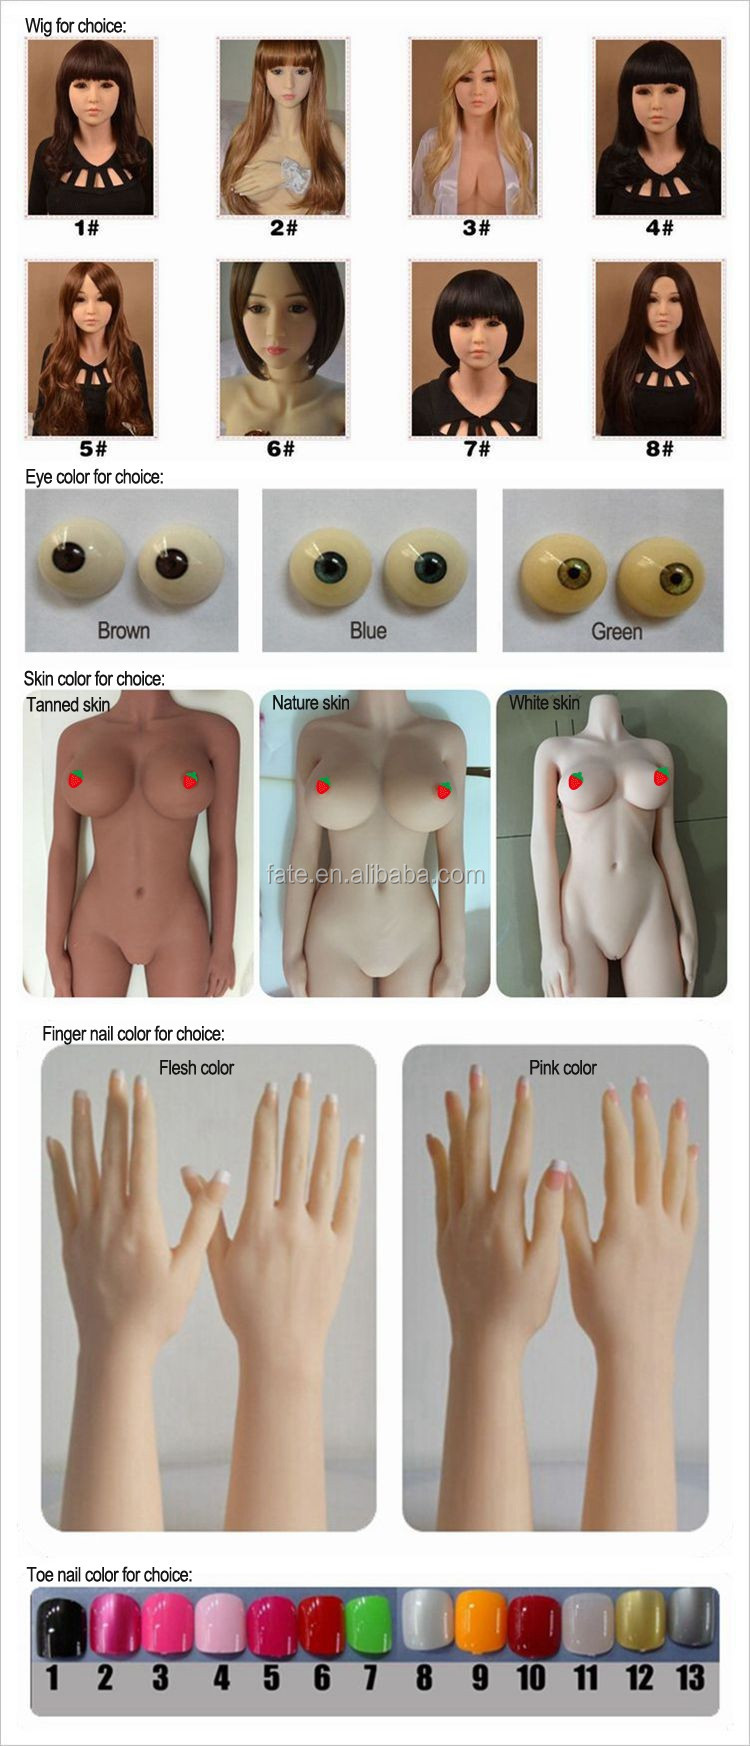 wholesale real sex doll for men big breast sex doll artificial girl for sex